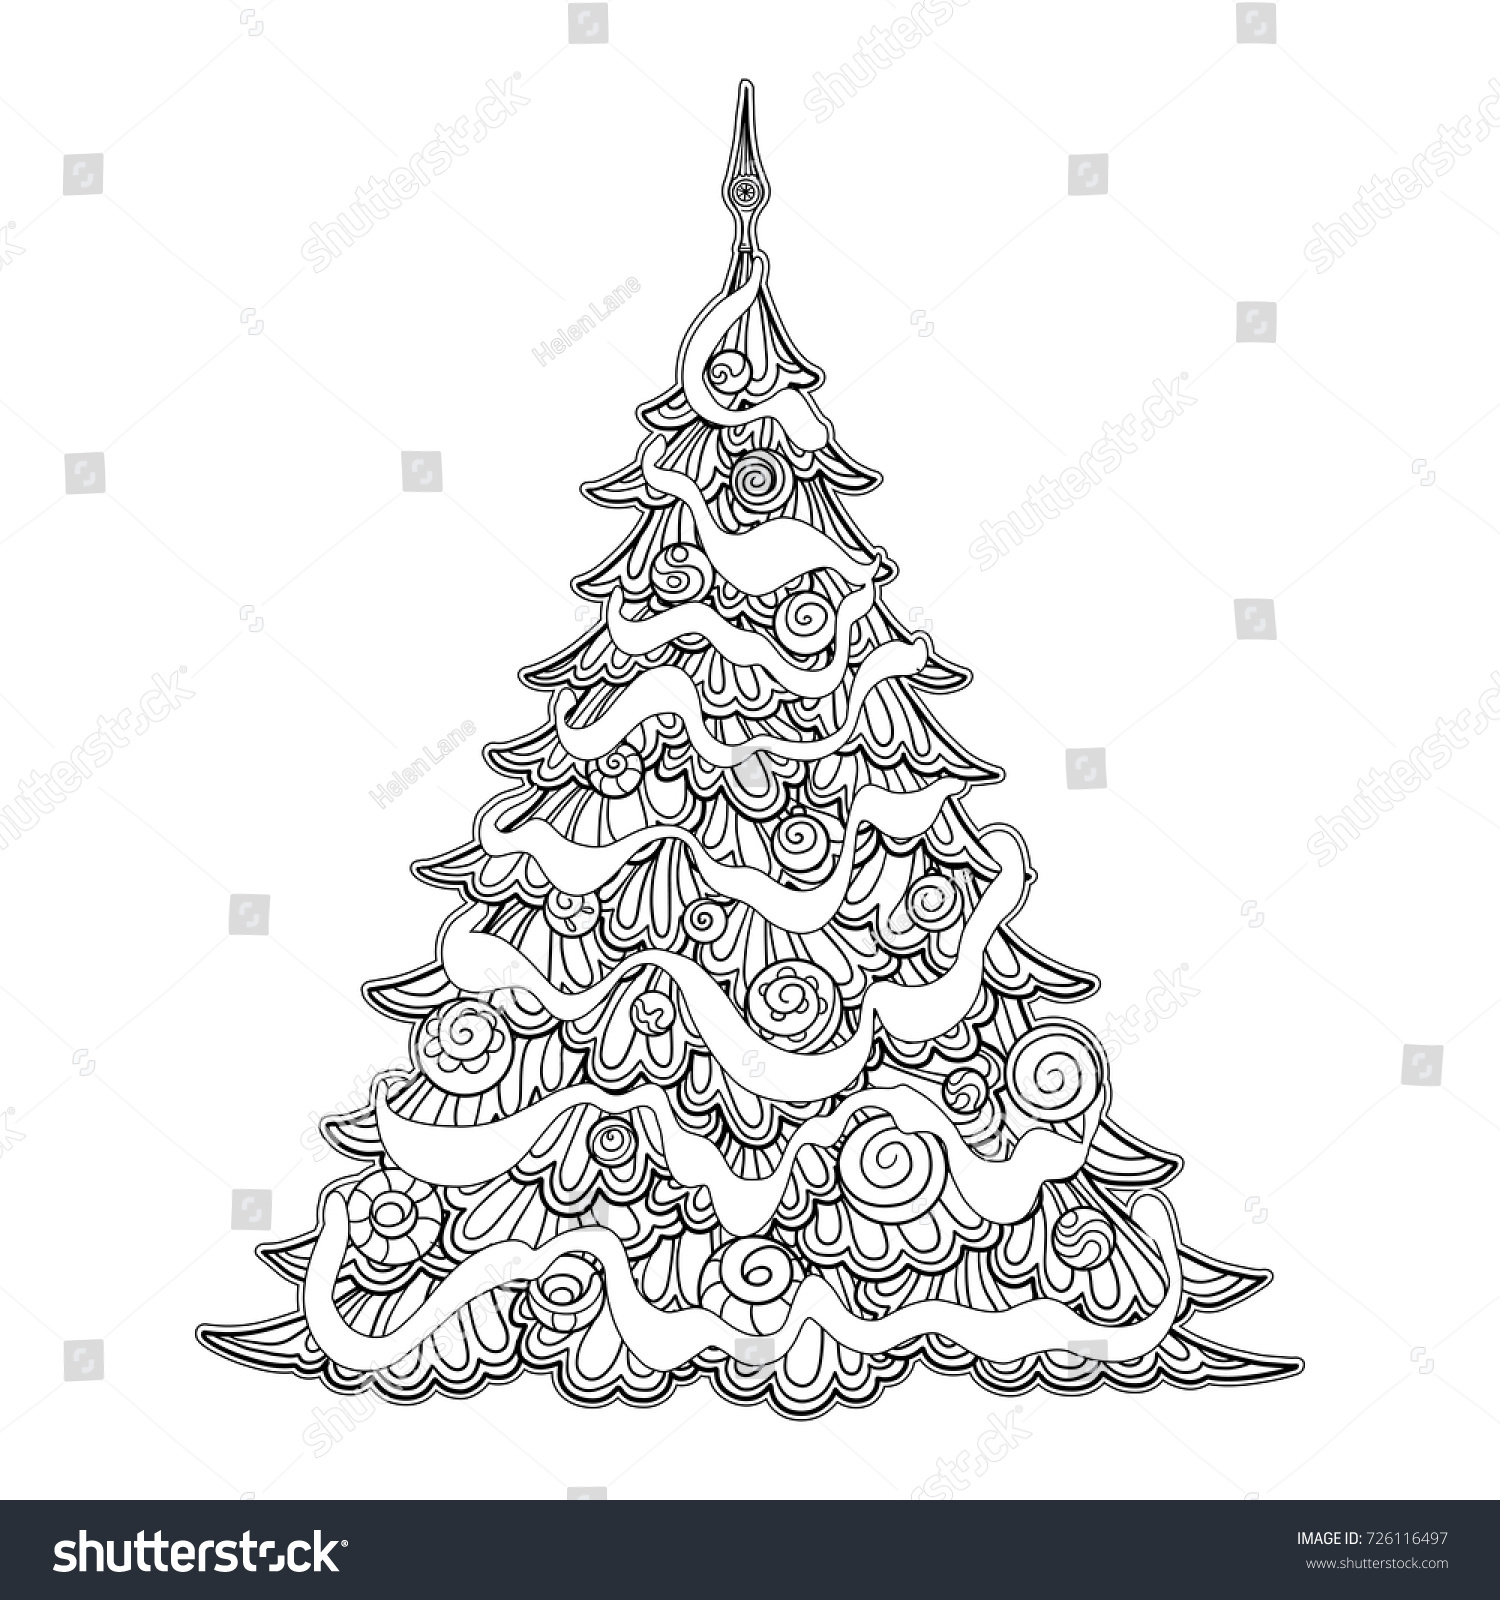 Contour Line Drawing Tree : Christmas tree contour drawing good coloring stock vector